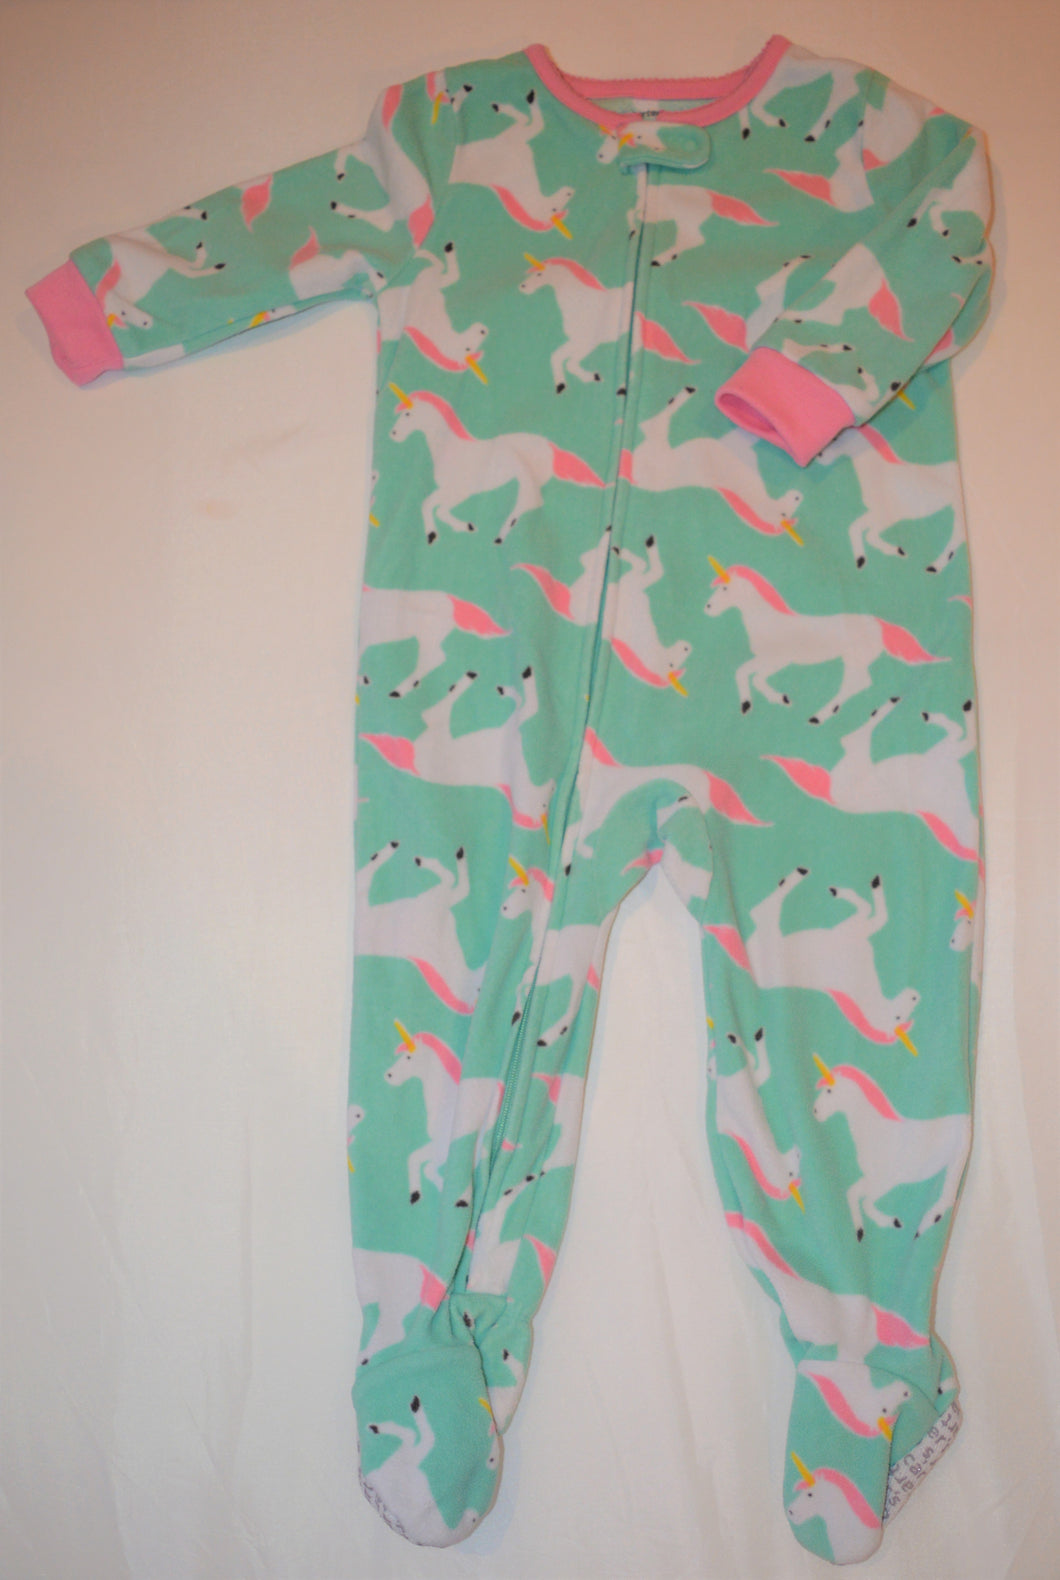 Carter's Mint Green with White and Pink Horses Fleece Sleeper